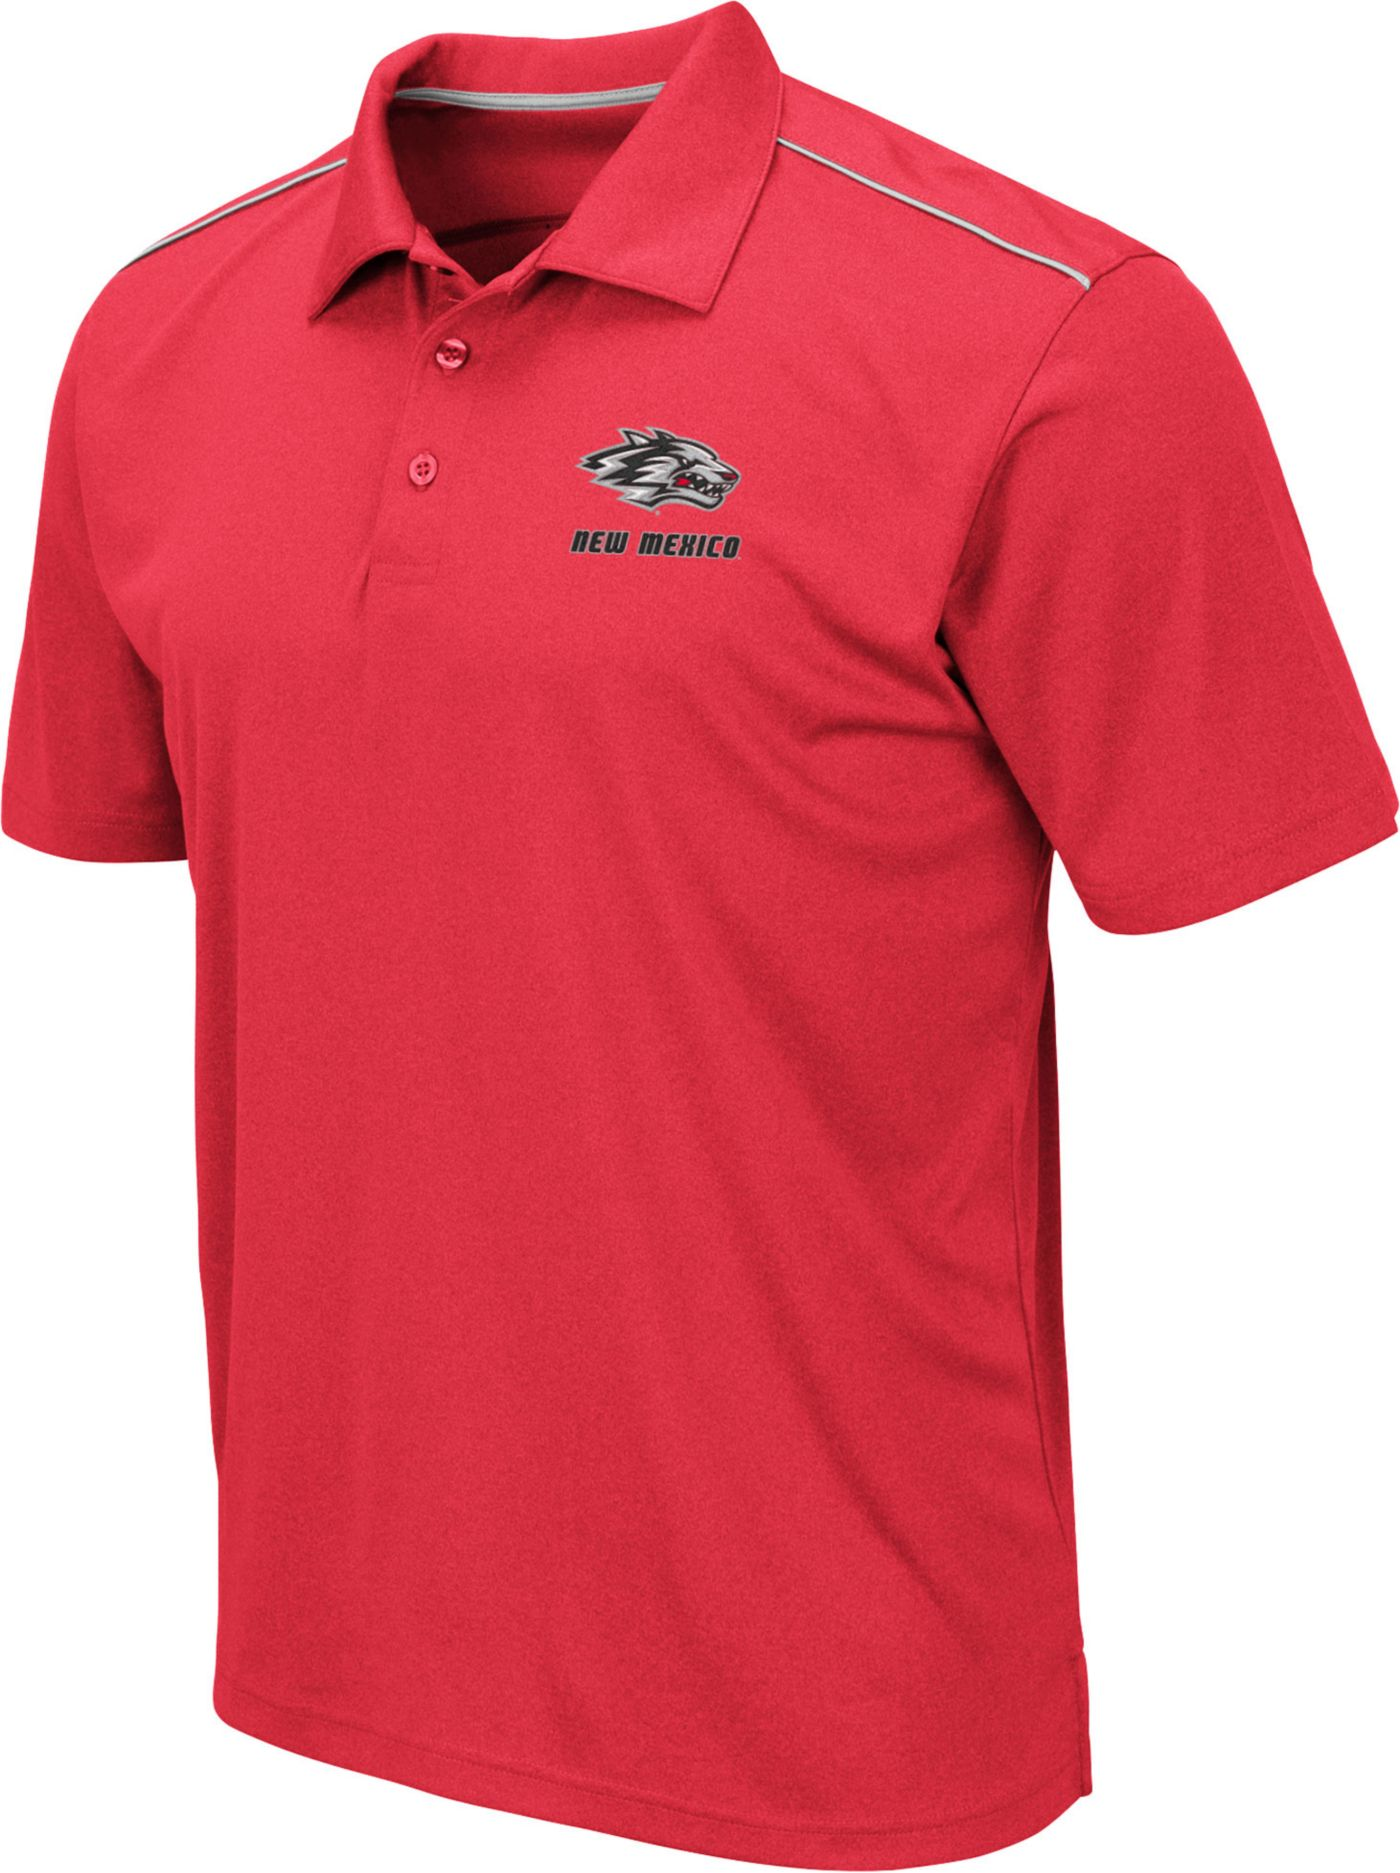 Colosseum Men's New Mexico Lobos Cherry Eagle Polo